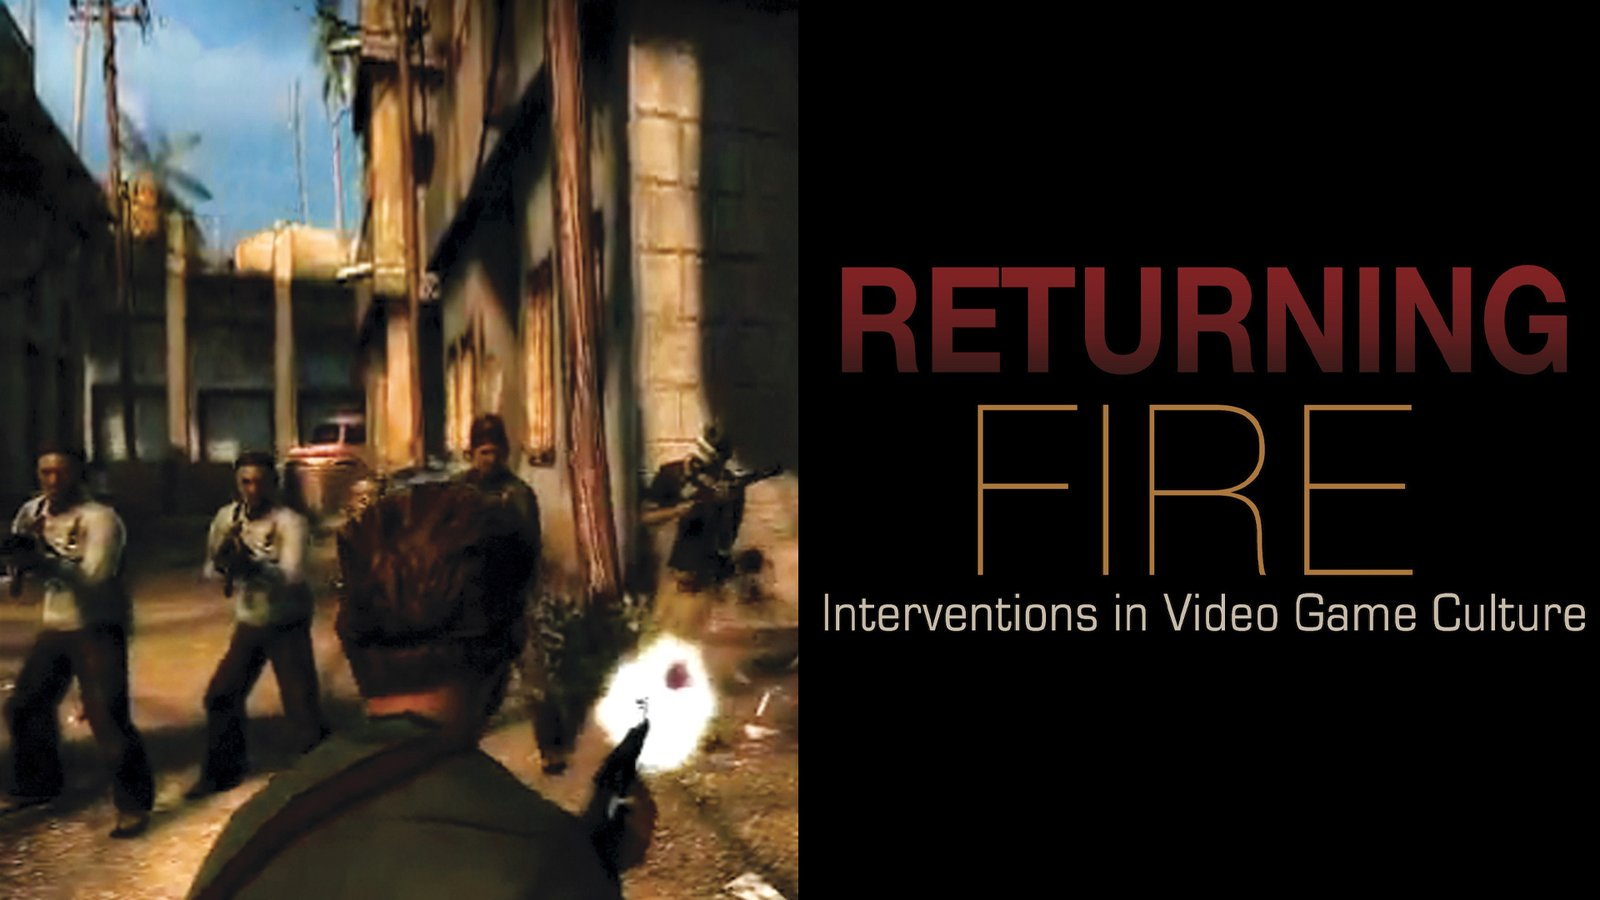 Returning Fire - Interventions in Video Game Culture